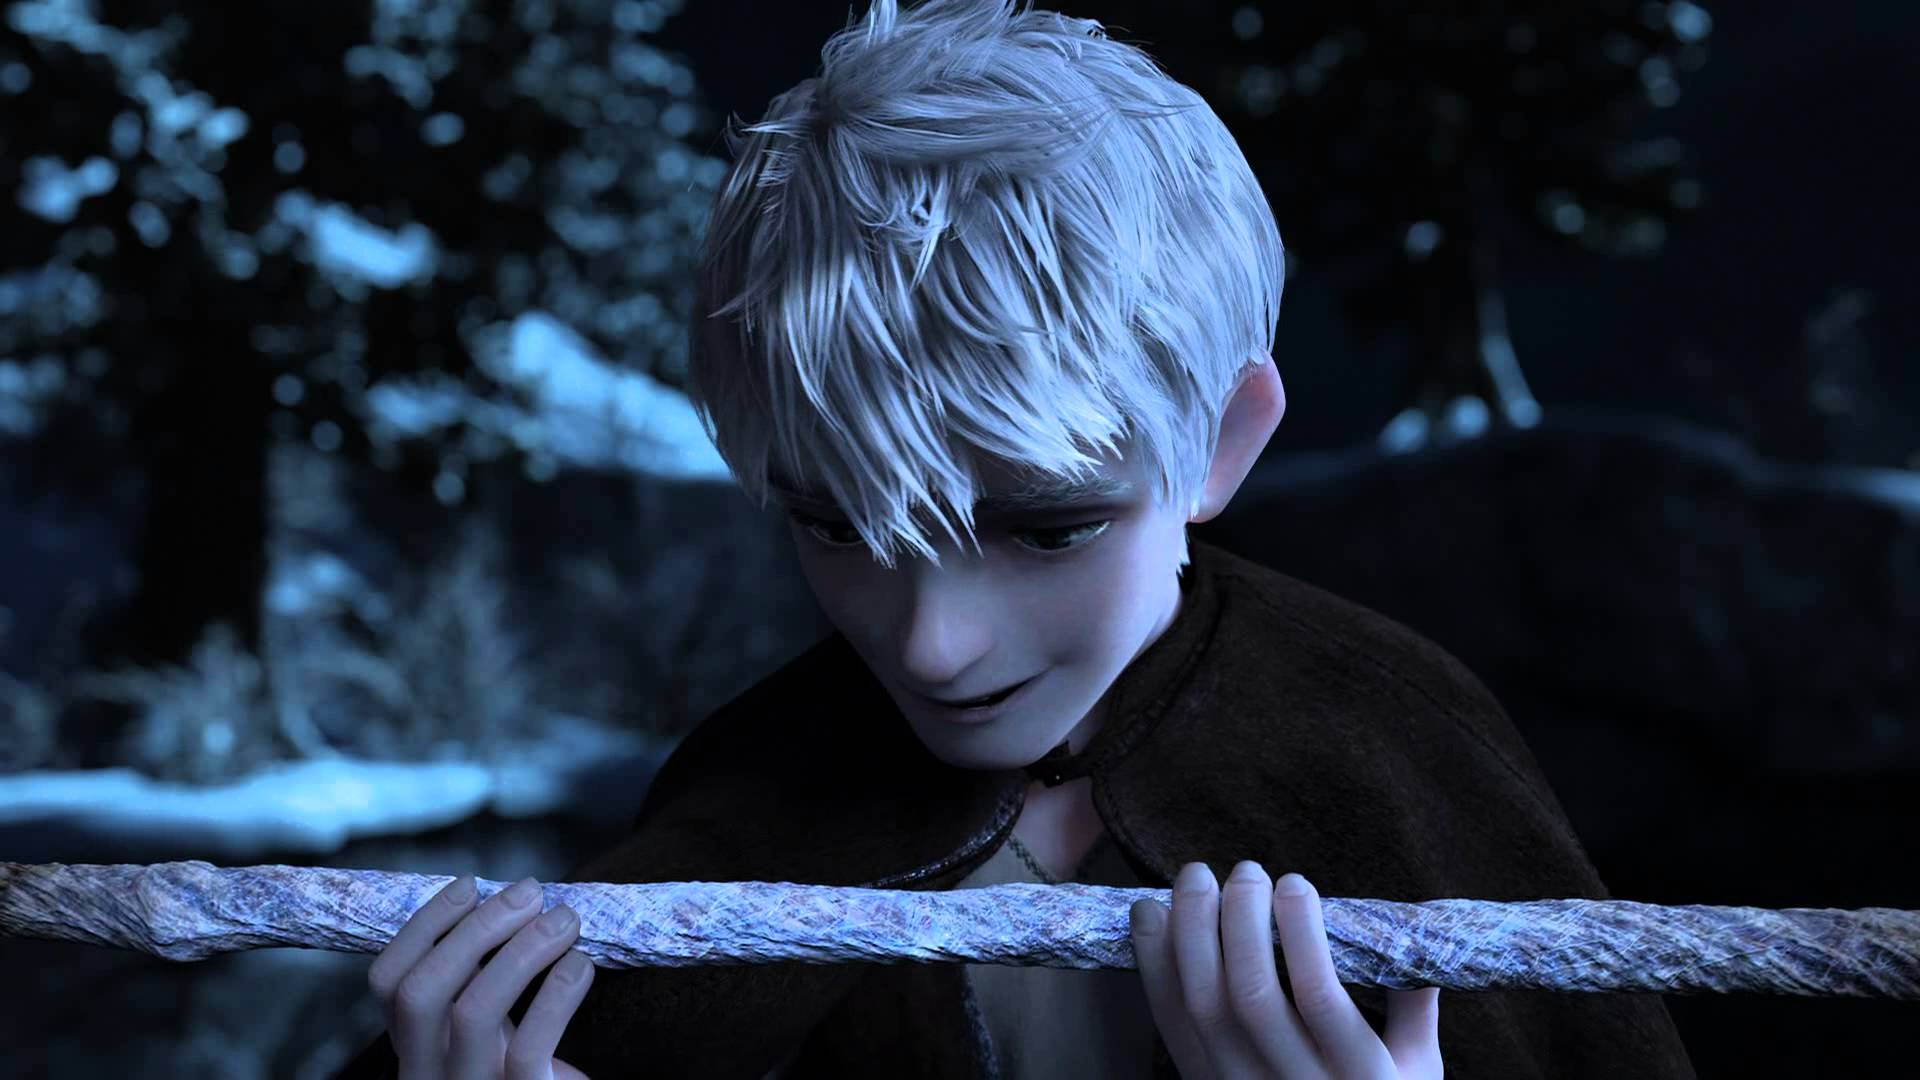 Jack Frost Wallpapers - Wallpaper Cave